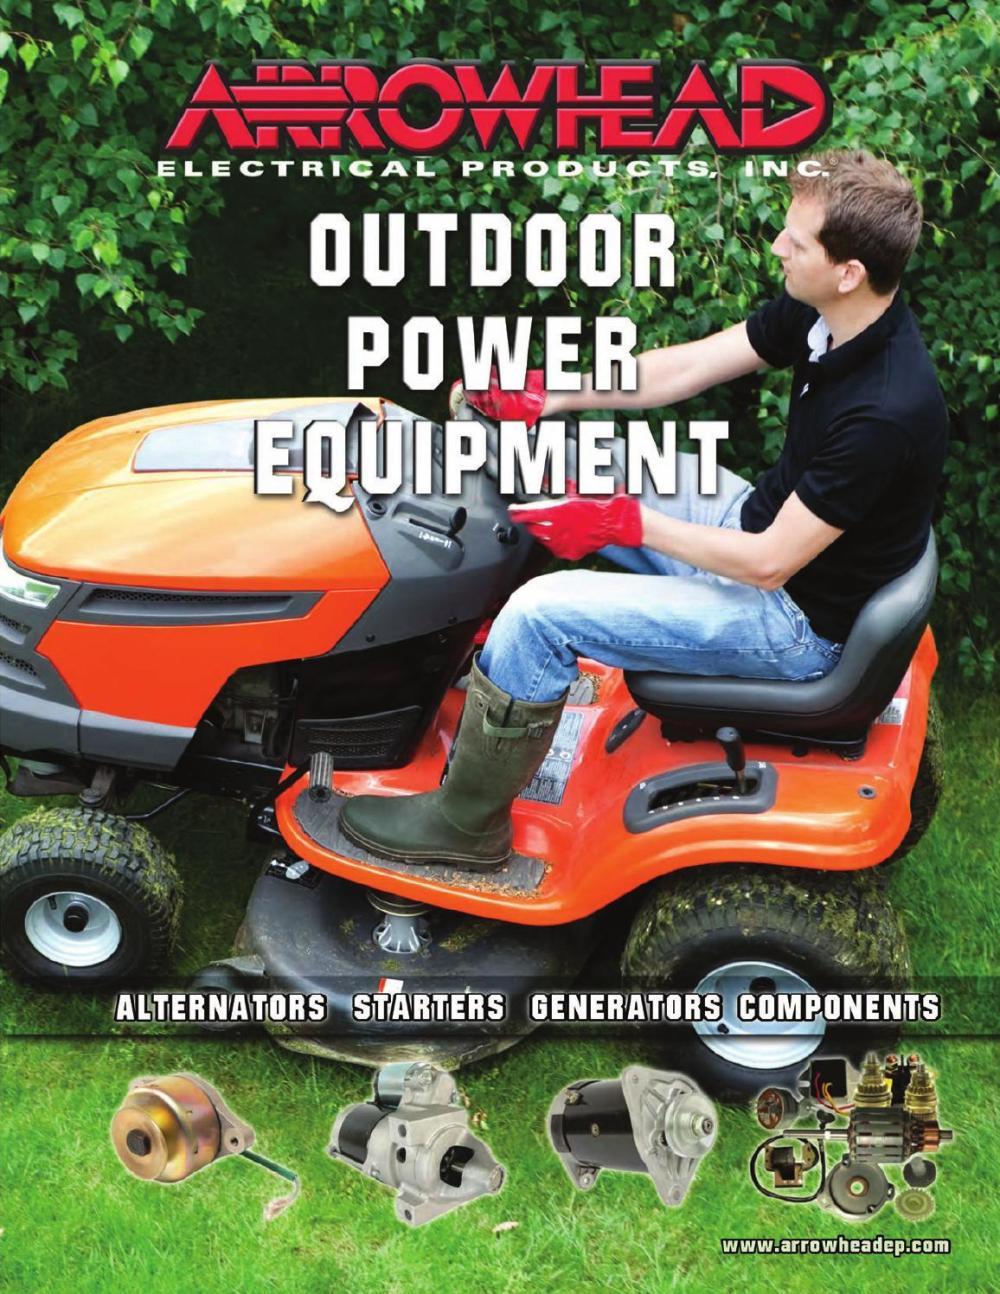 medium resolution of arrowhead electrical products outdoor power equipment catalog 2013 by arrowhead electrical products issuu